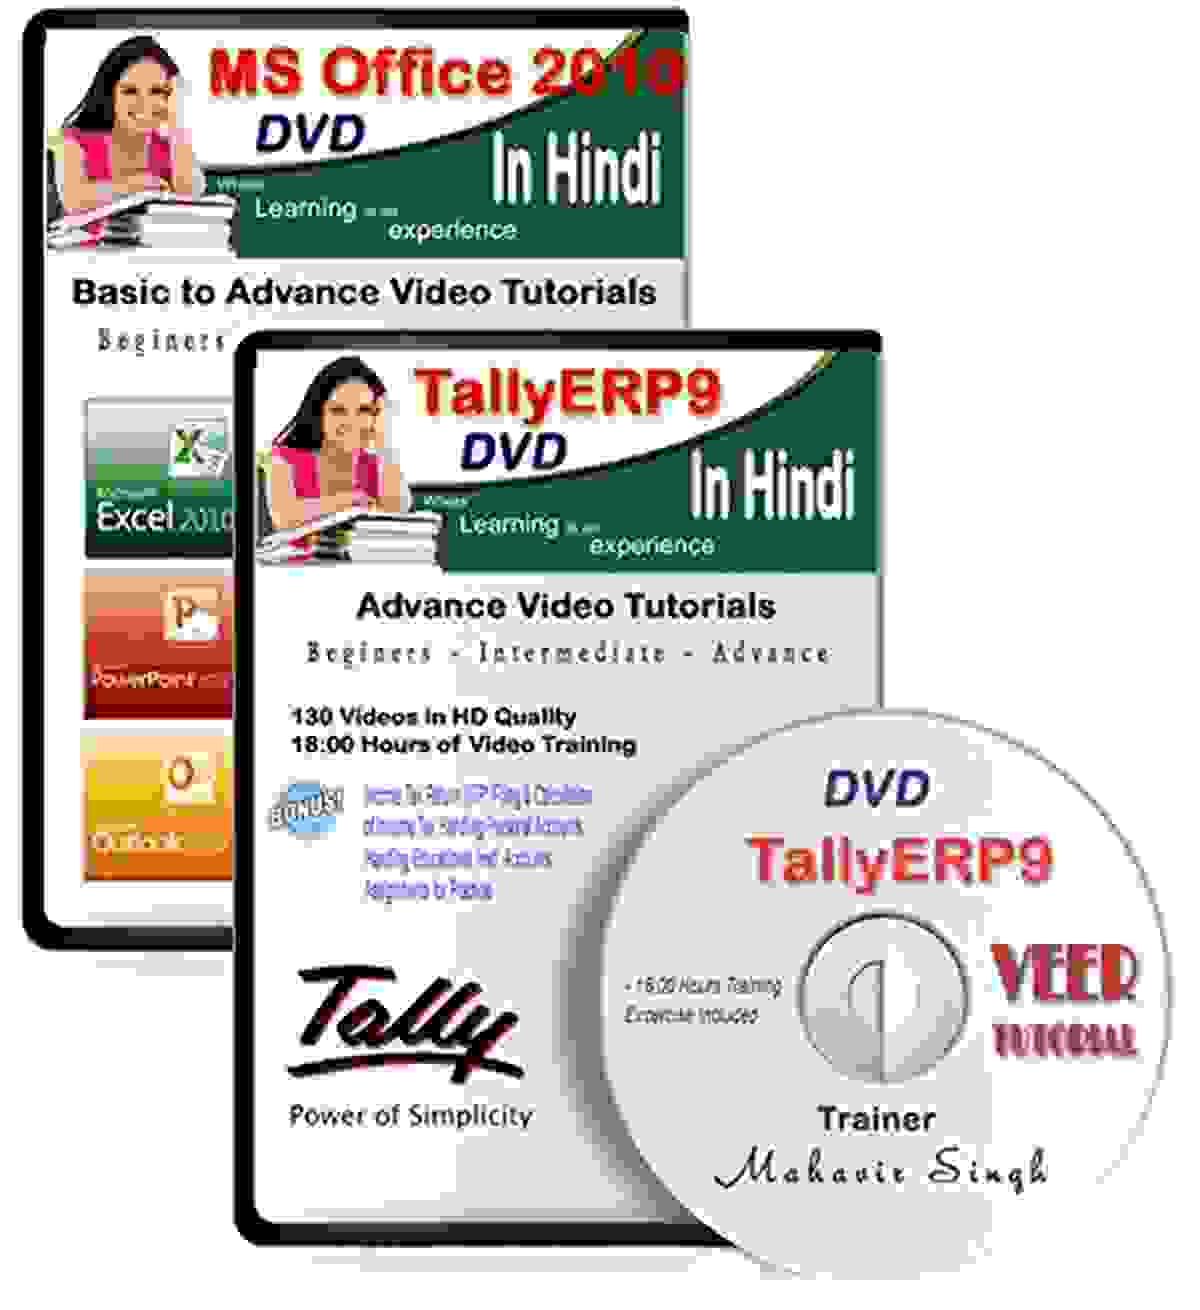 TallyERP9 Tutorial DVD Latest Version with GST + MS Office Latest Version (300 HD Video, 28 Hrs) 2 DVD in Hindi Video